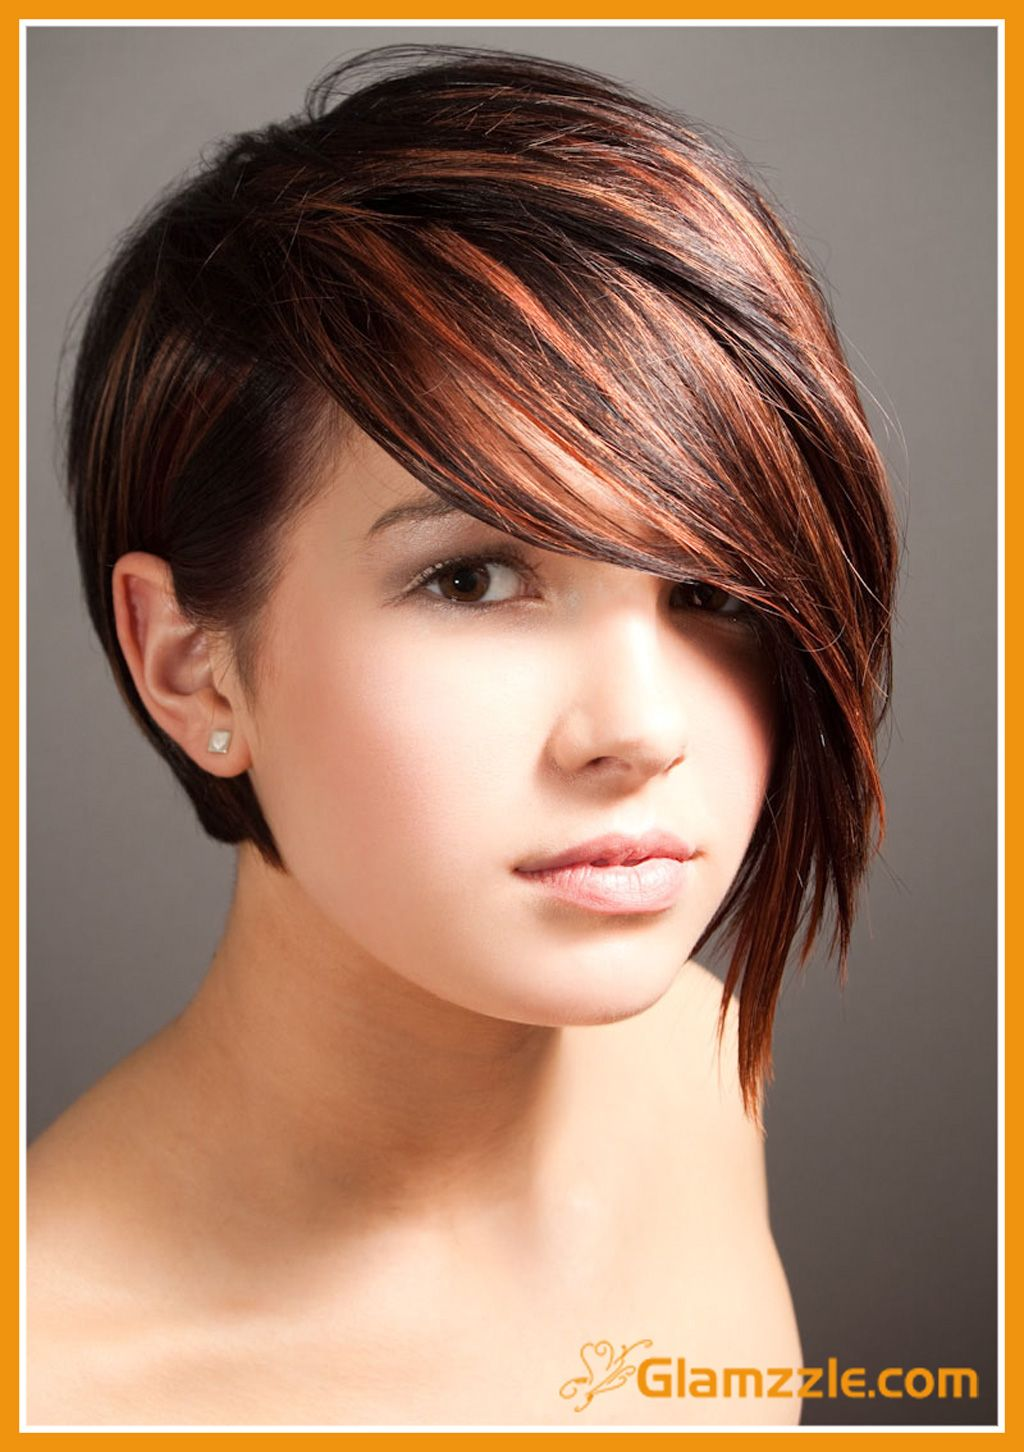 Cute haircuts for short hair - How To Recommend Short Bob Haircuts For Round Faces Politely You Should Suggest The Short Bob Haircuts For Round Faces If You Have Friends In Chubby Face